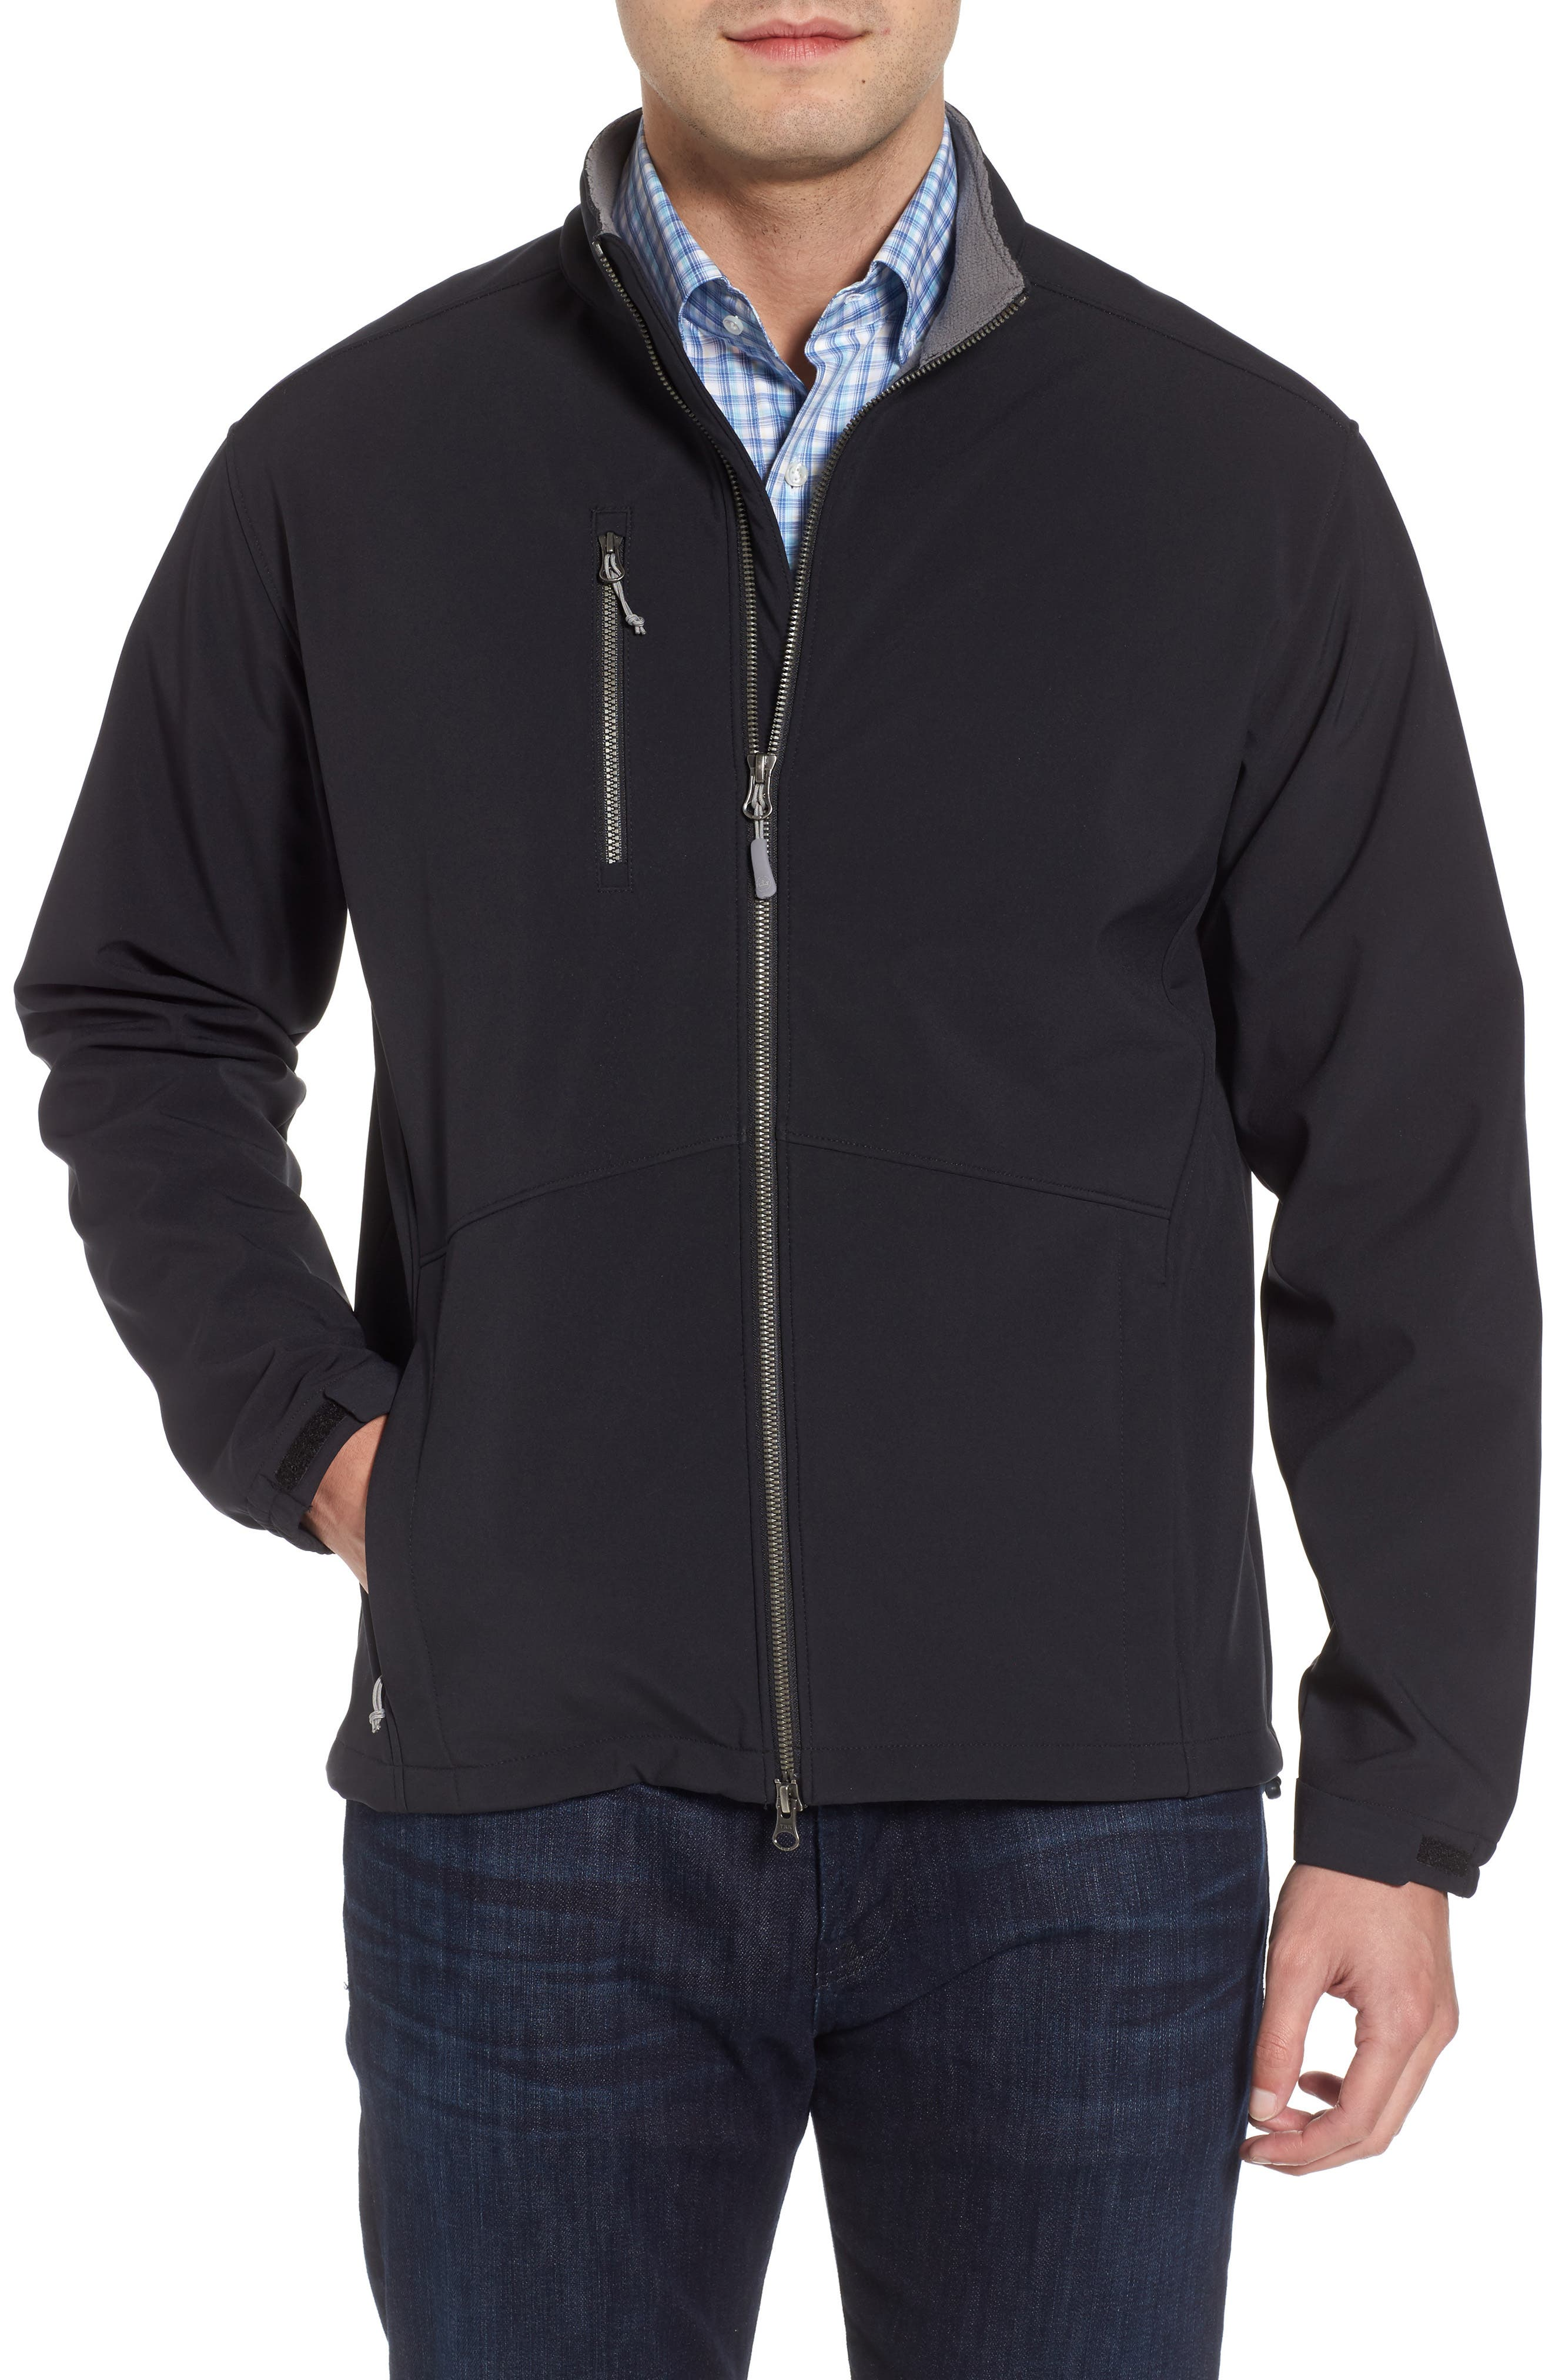 Anchorage 3-Layer Soft Shell Jacket,                         Main,                         color,